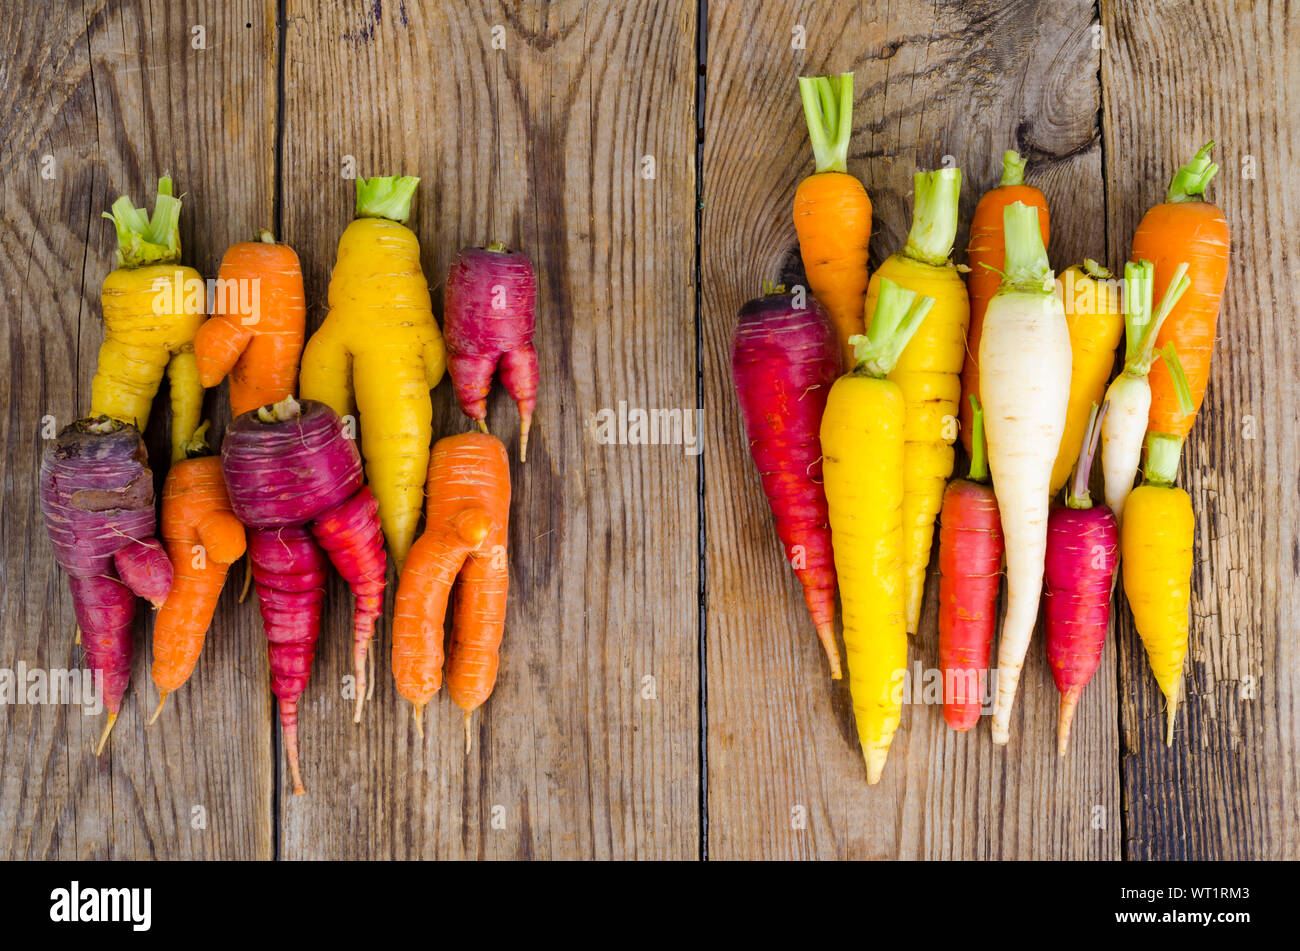 Ugly, deformed fresh organic carrots different color. Studio Photo Stock Photo